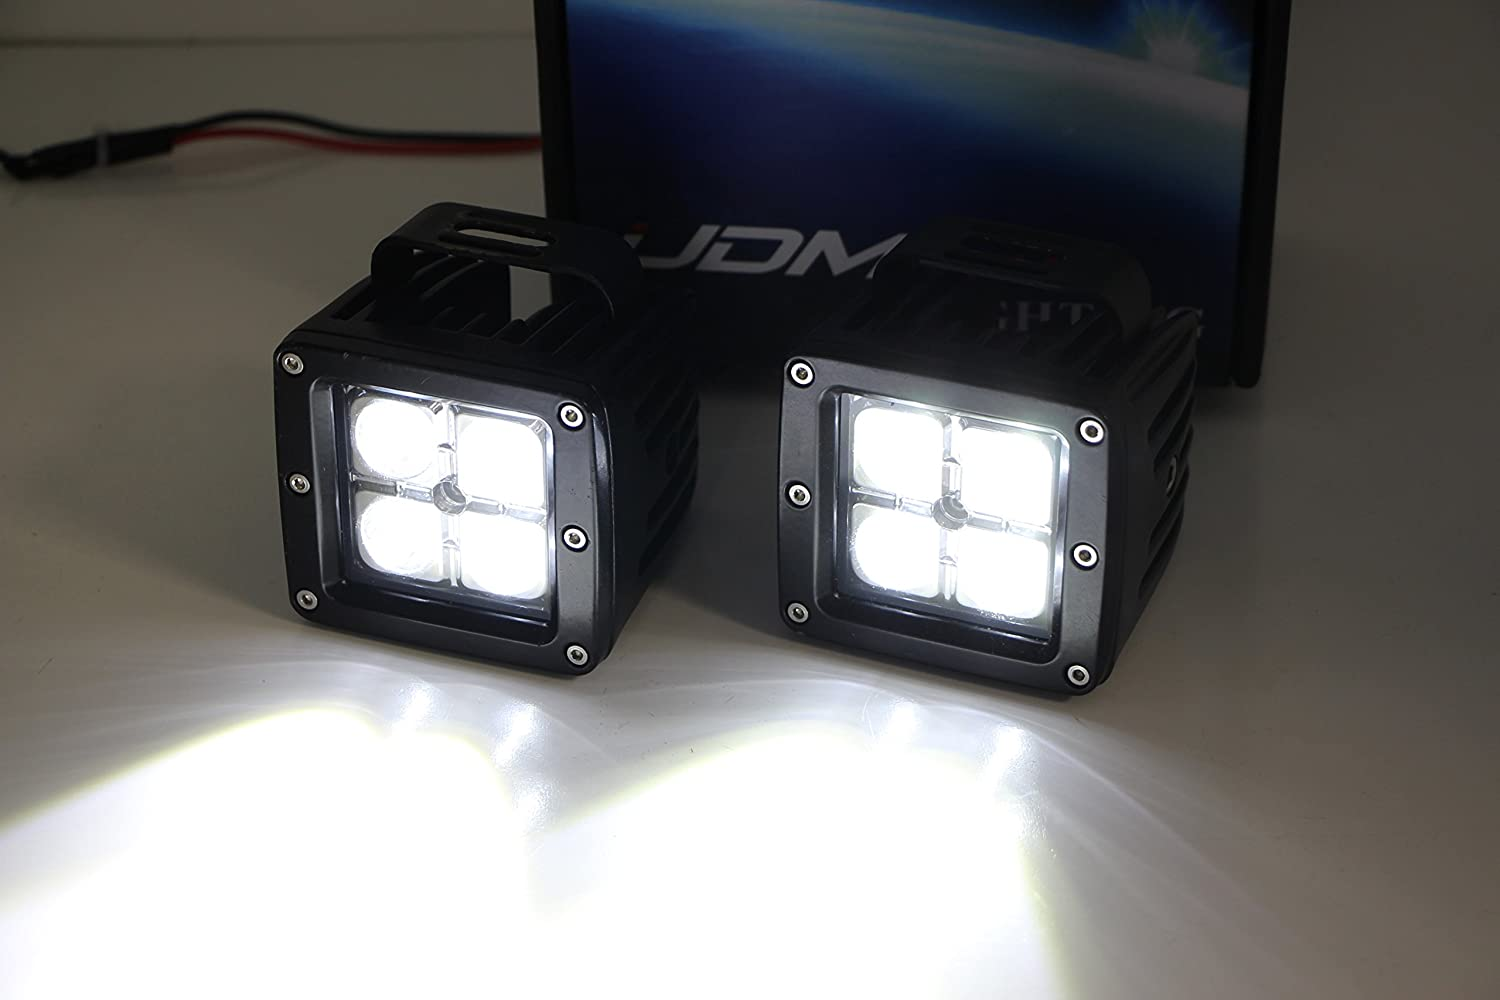 iJDMTOY Lower Grille LED Pod Light Fog Lamp Kit For 2005-07 Ford F250 F350 F450 Excursion Includes 2 OEM Foglamp Location Mounting Brackets /& On//Off Switch Wiring Kit 20W CREE LED Cubes